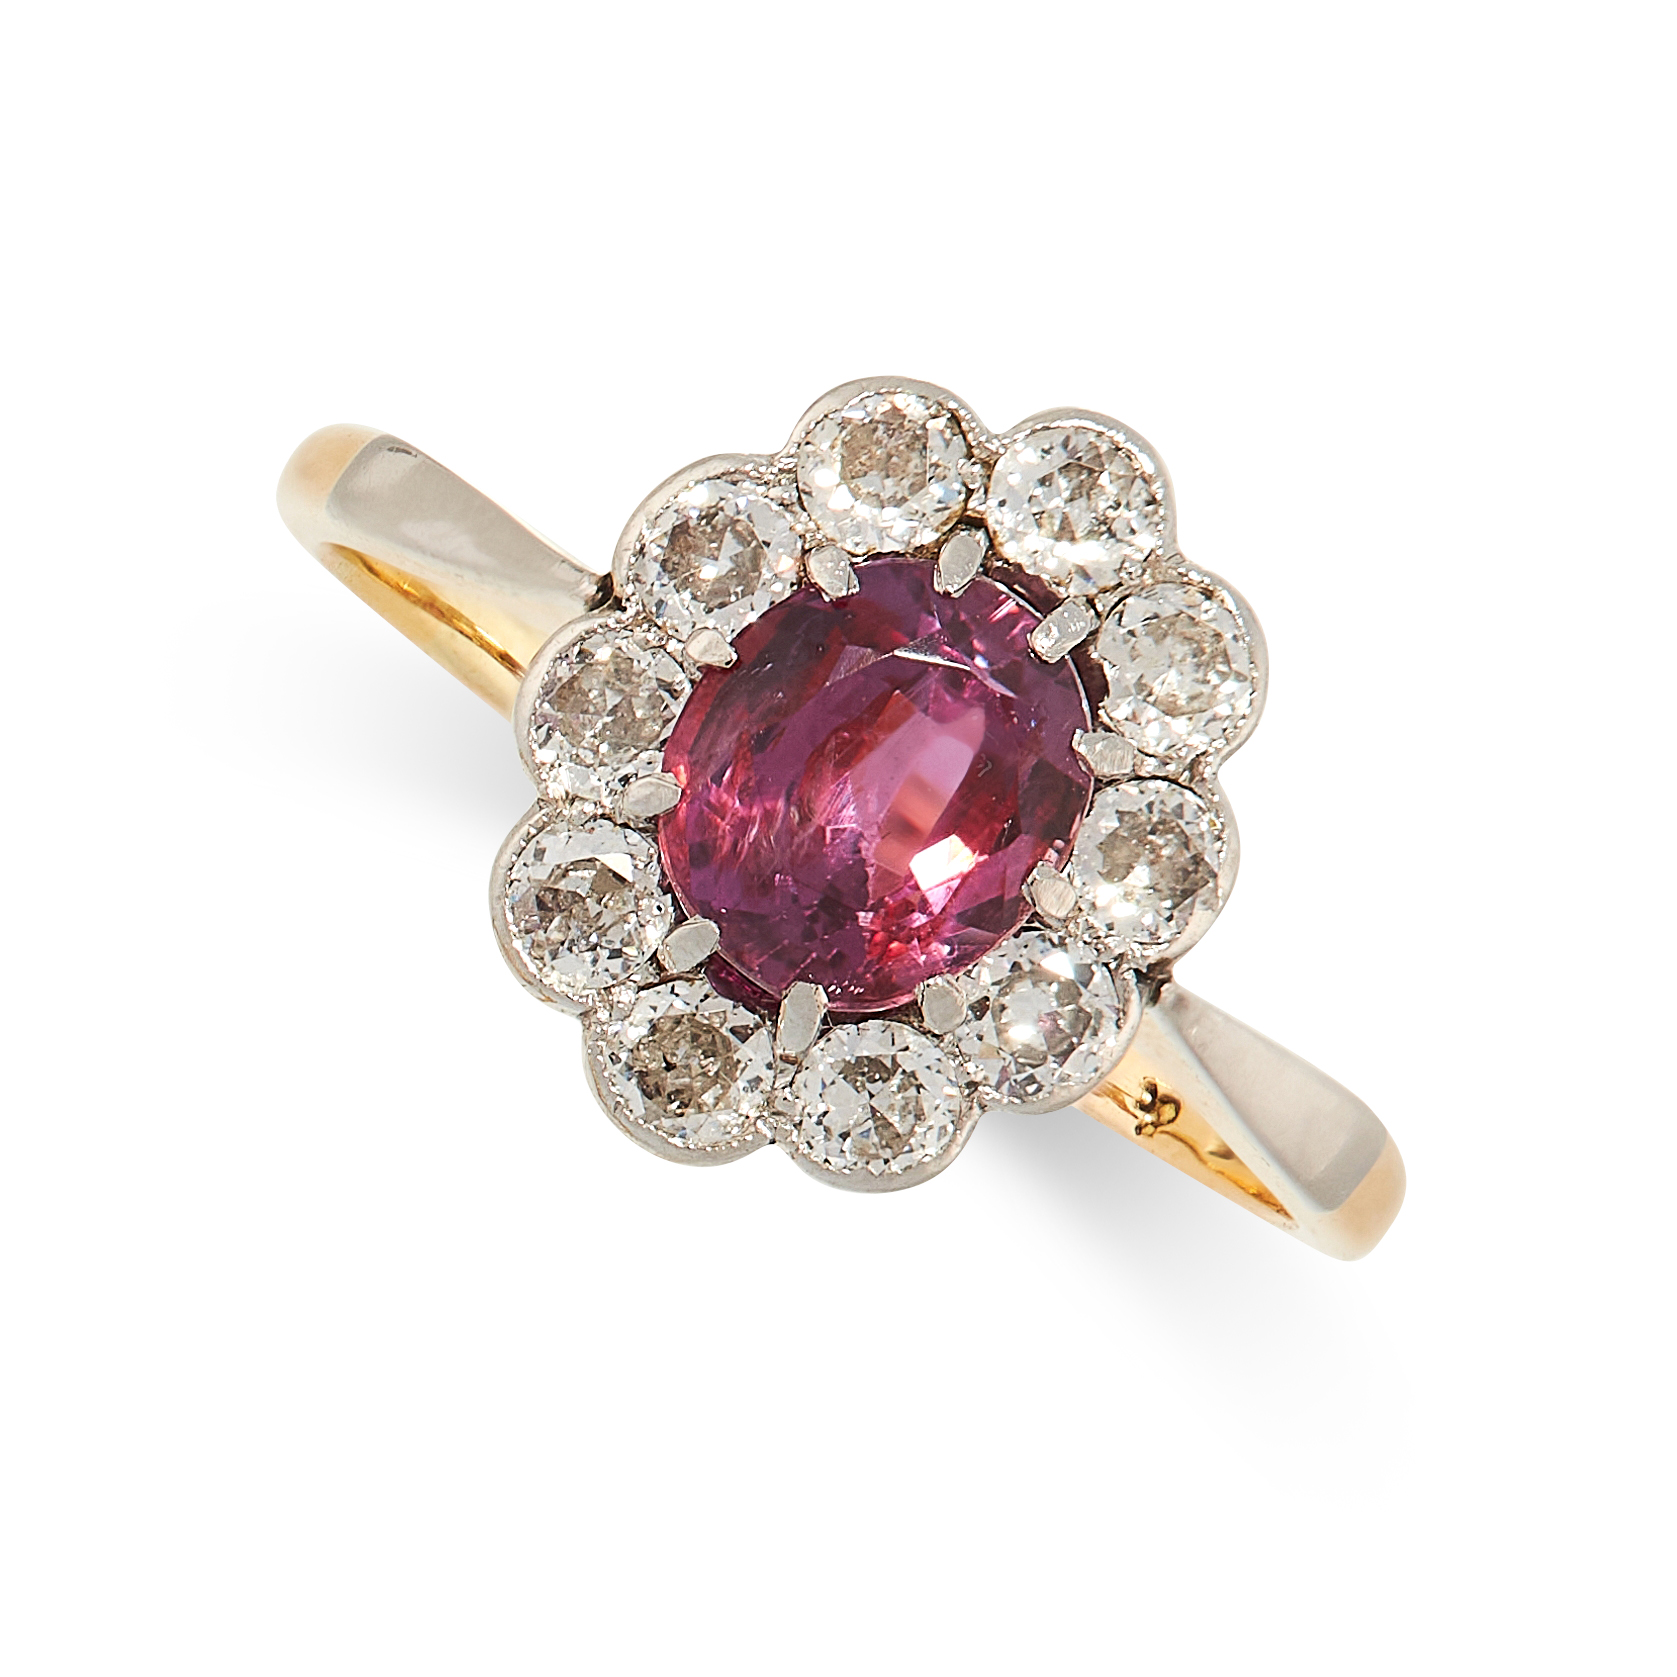 AN UNHEATED RUBY AND DIAMOND RING in 18ct yellow gold, set with an oval cut ruby of 1.42 carats,